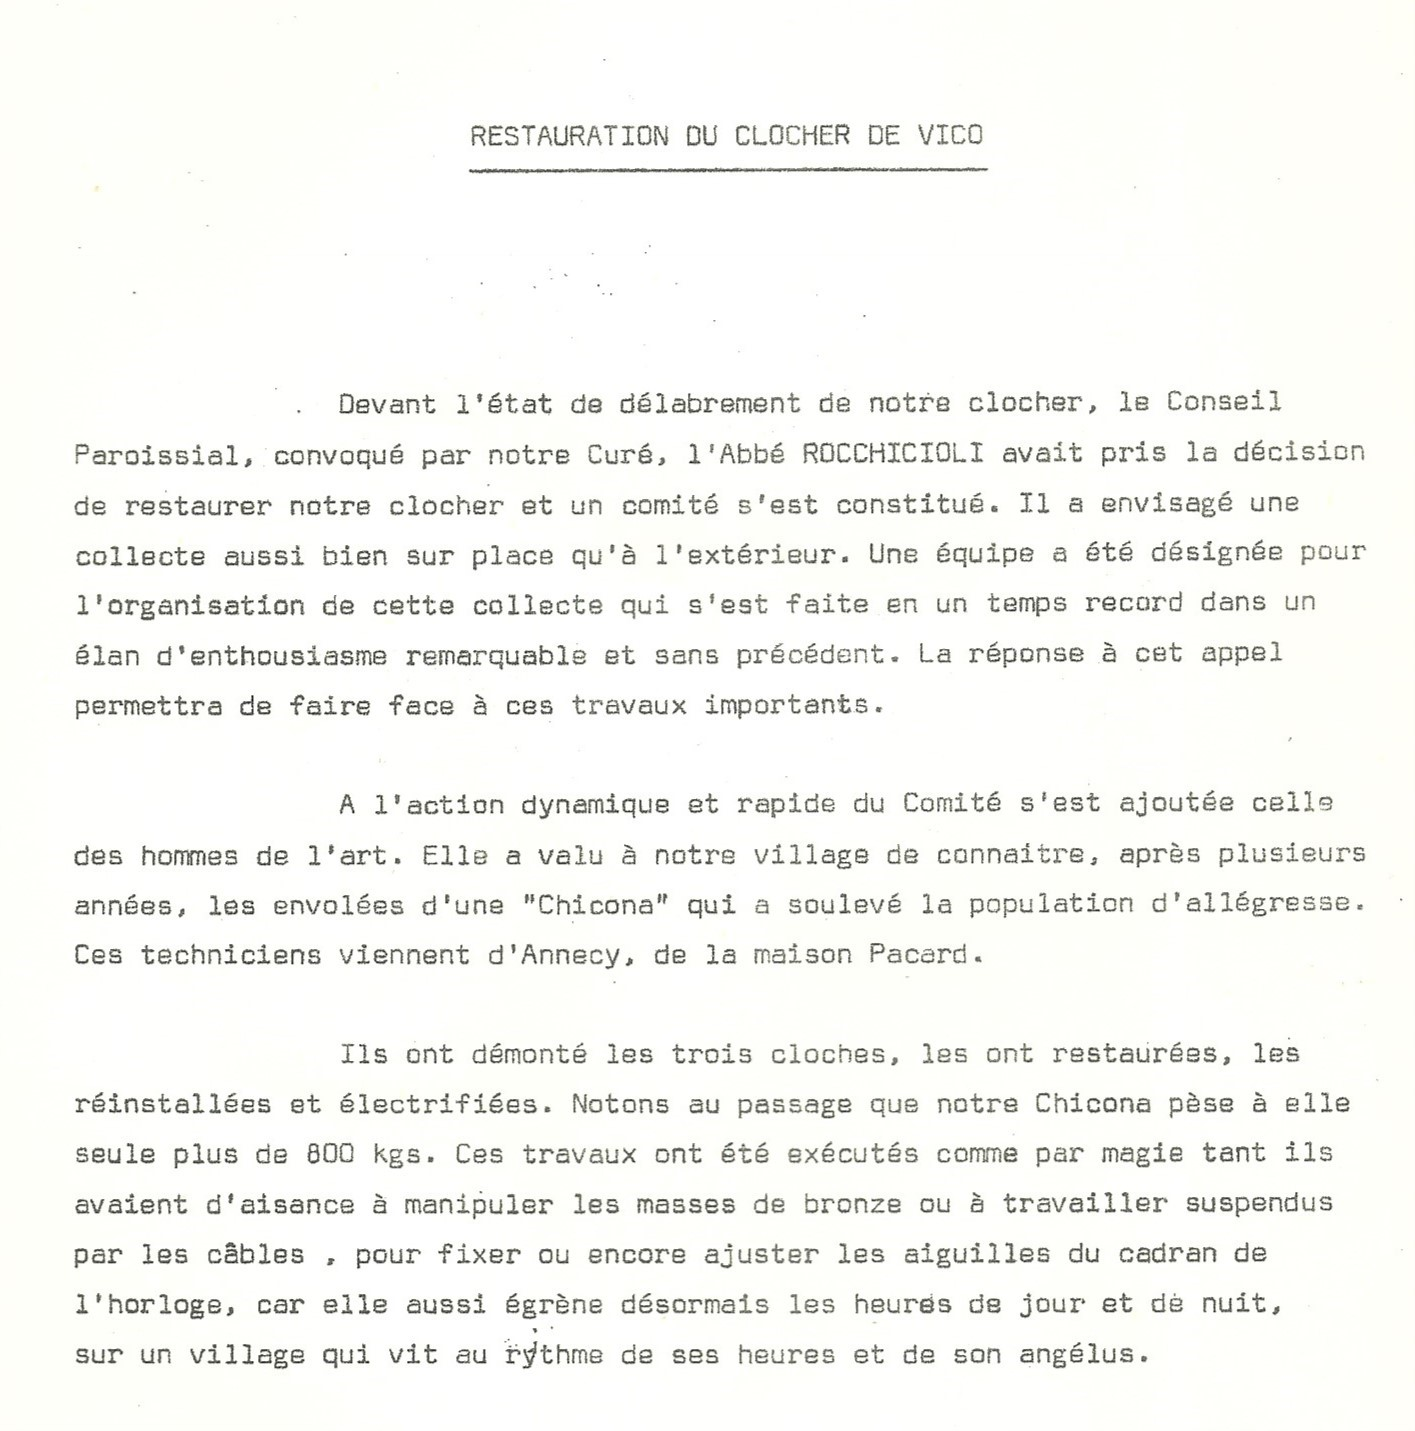 Extrait du bulletin municipal d'Avril 1974